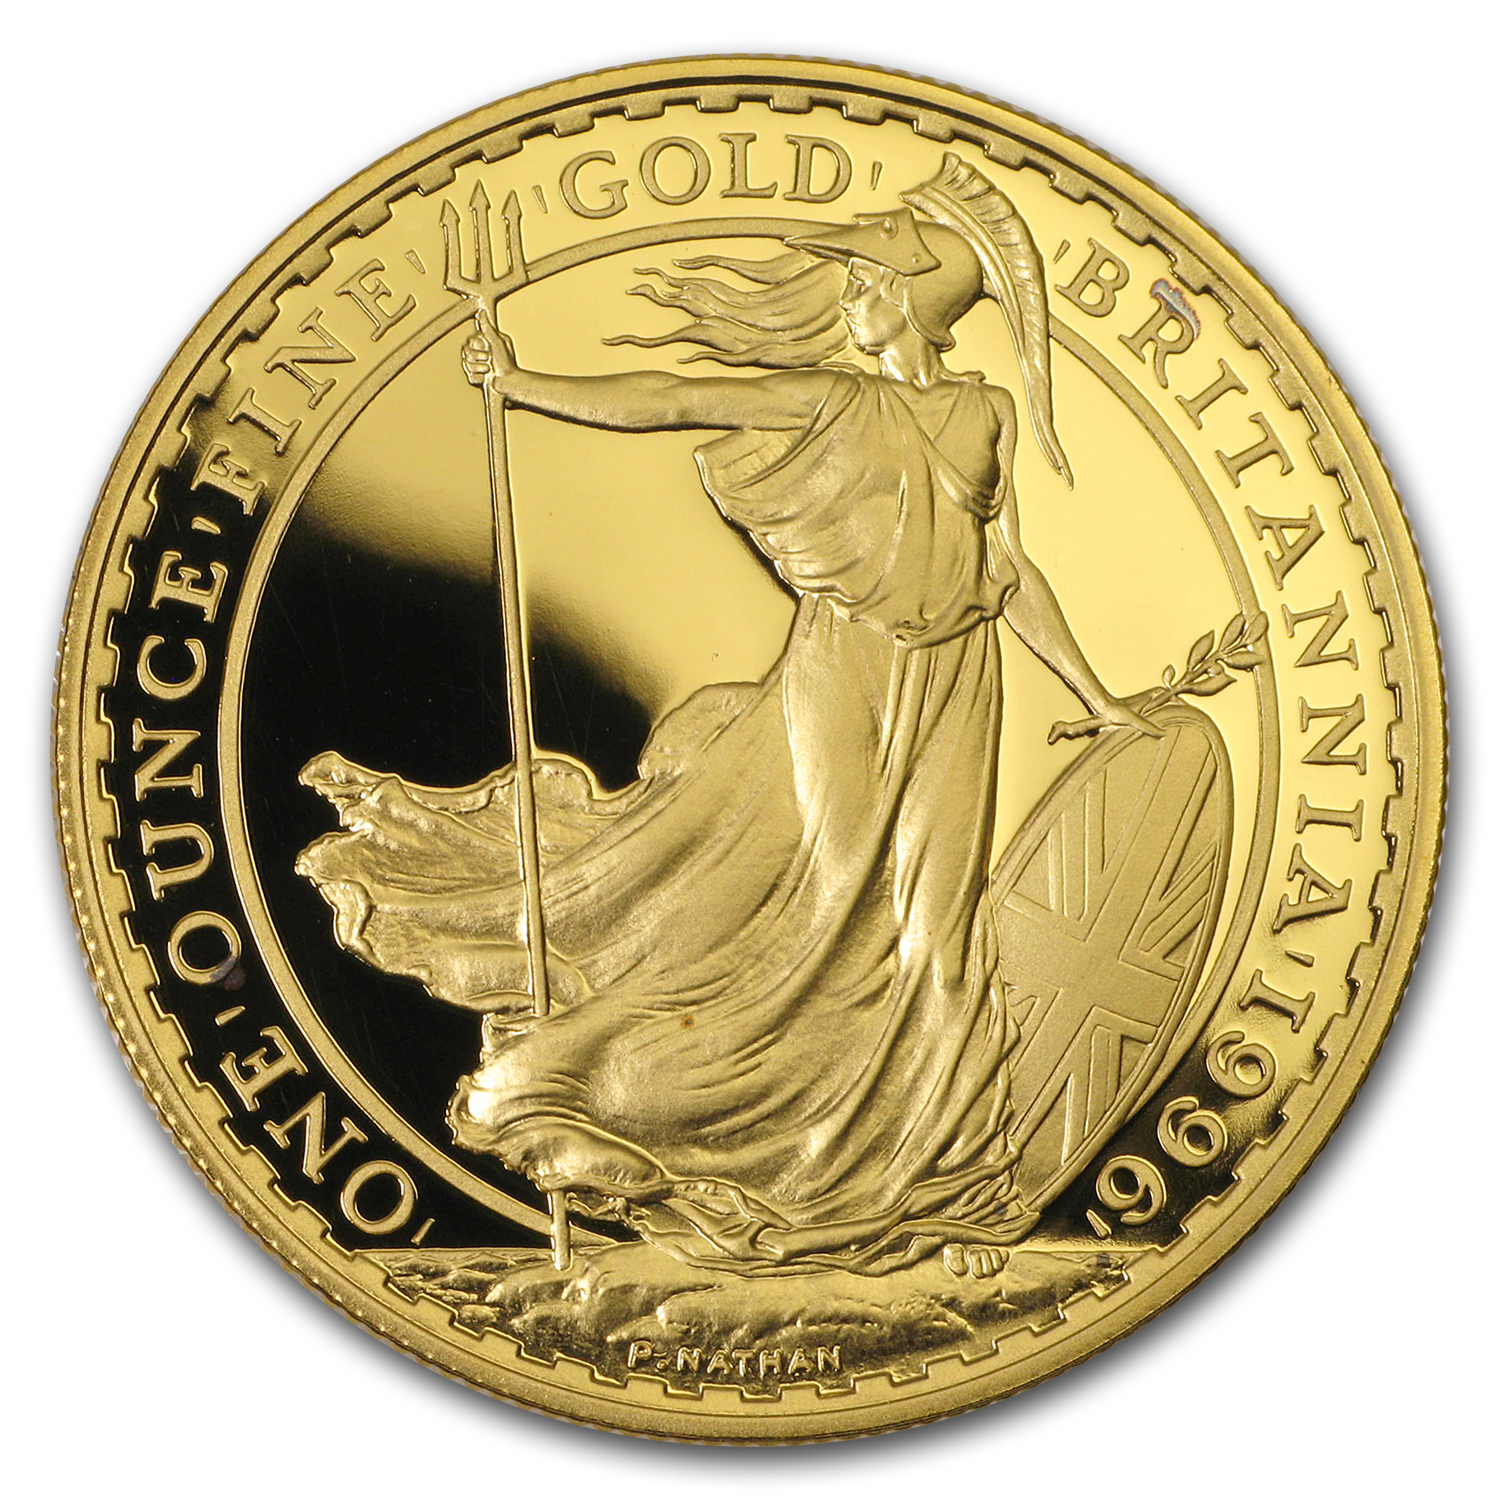 1996 1 oz Proof Gold Britannia